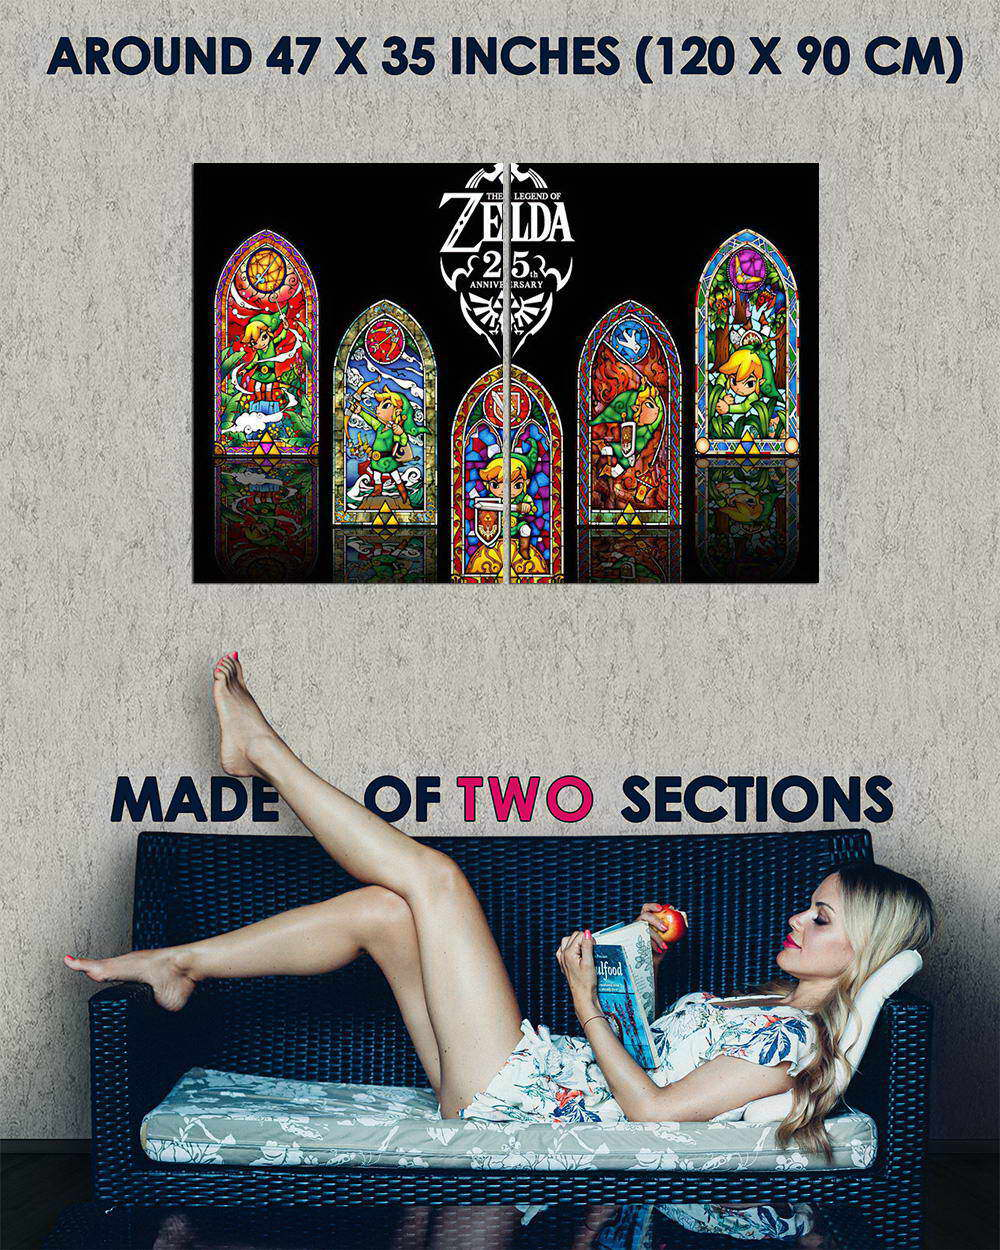 10373-The-Legend-Of-Zelda-Game-LAMINATED-POSTER-CA thumbnail 5